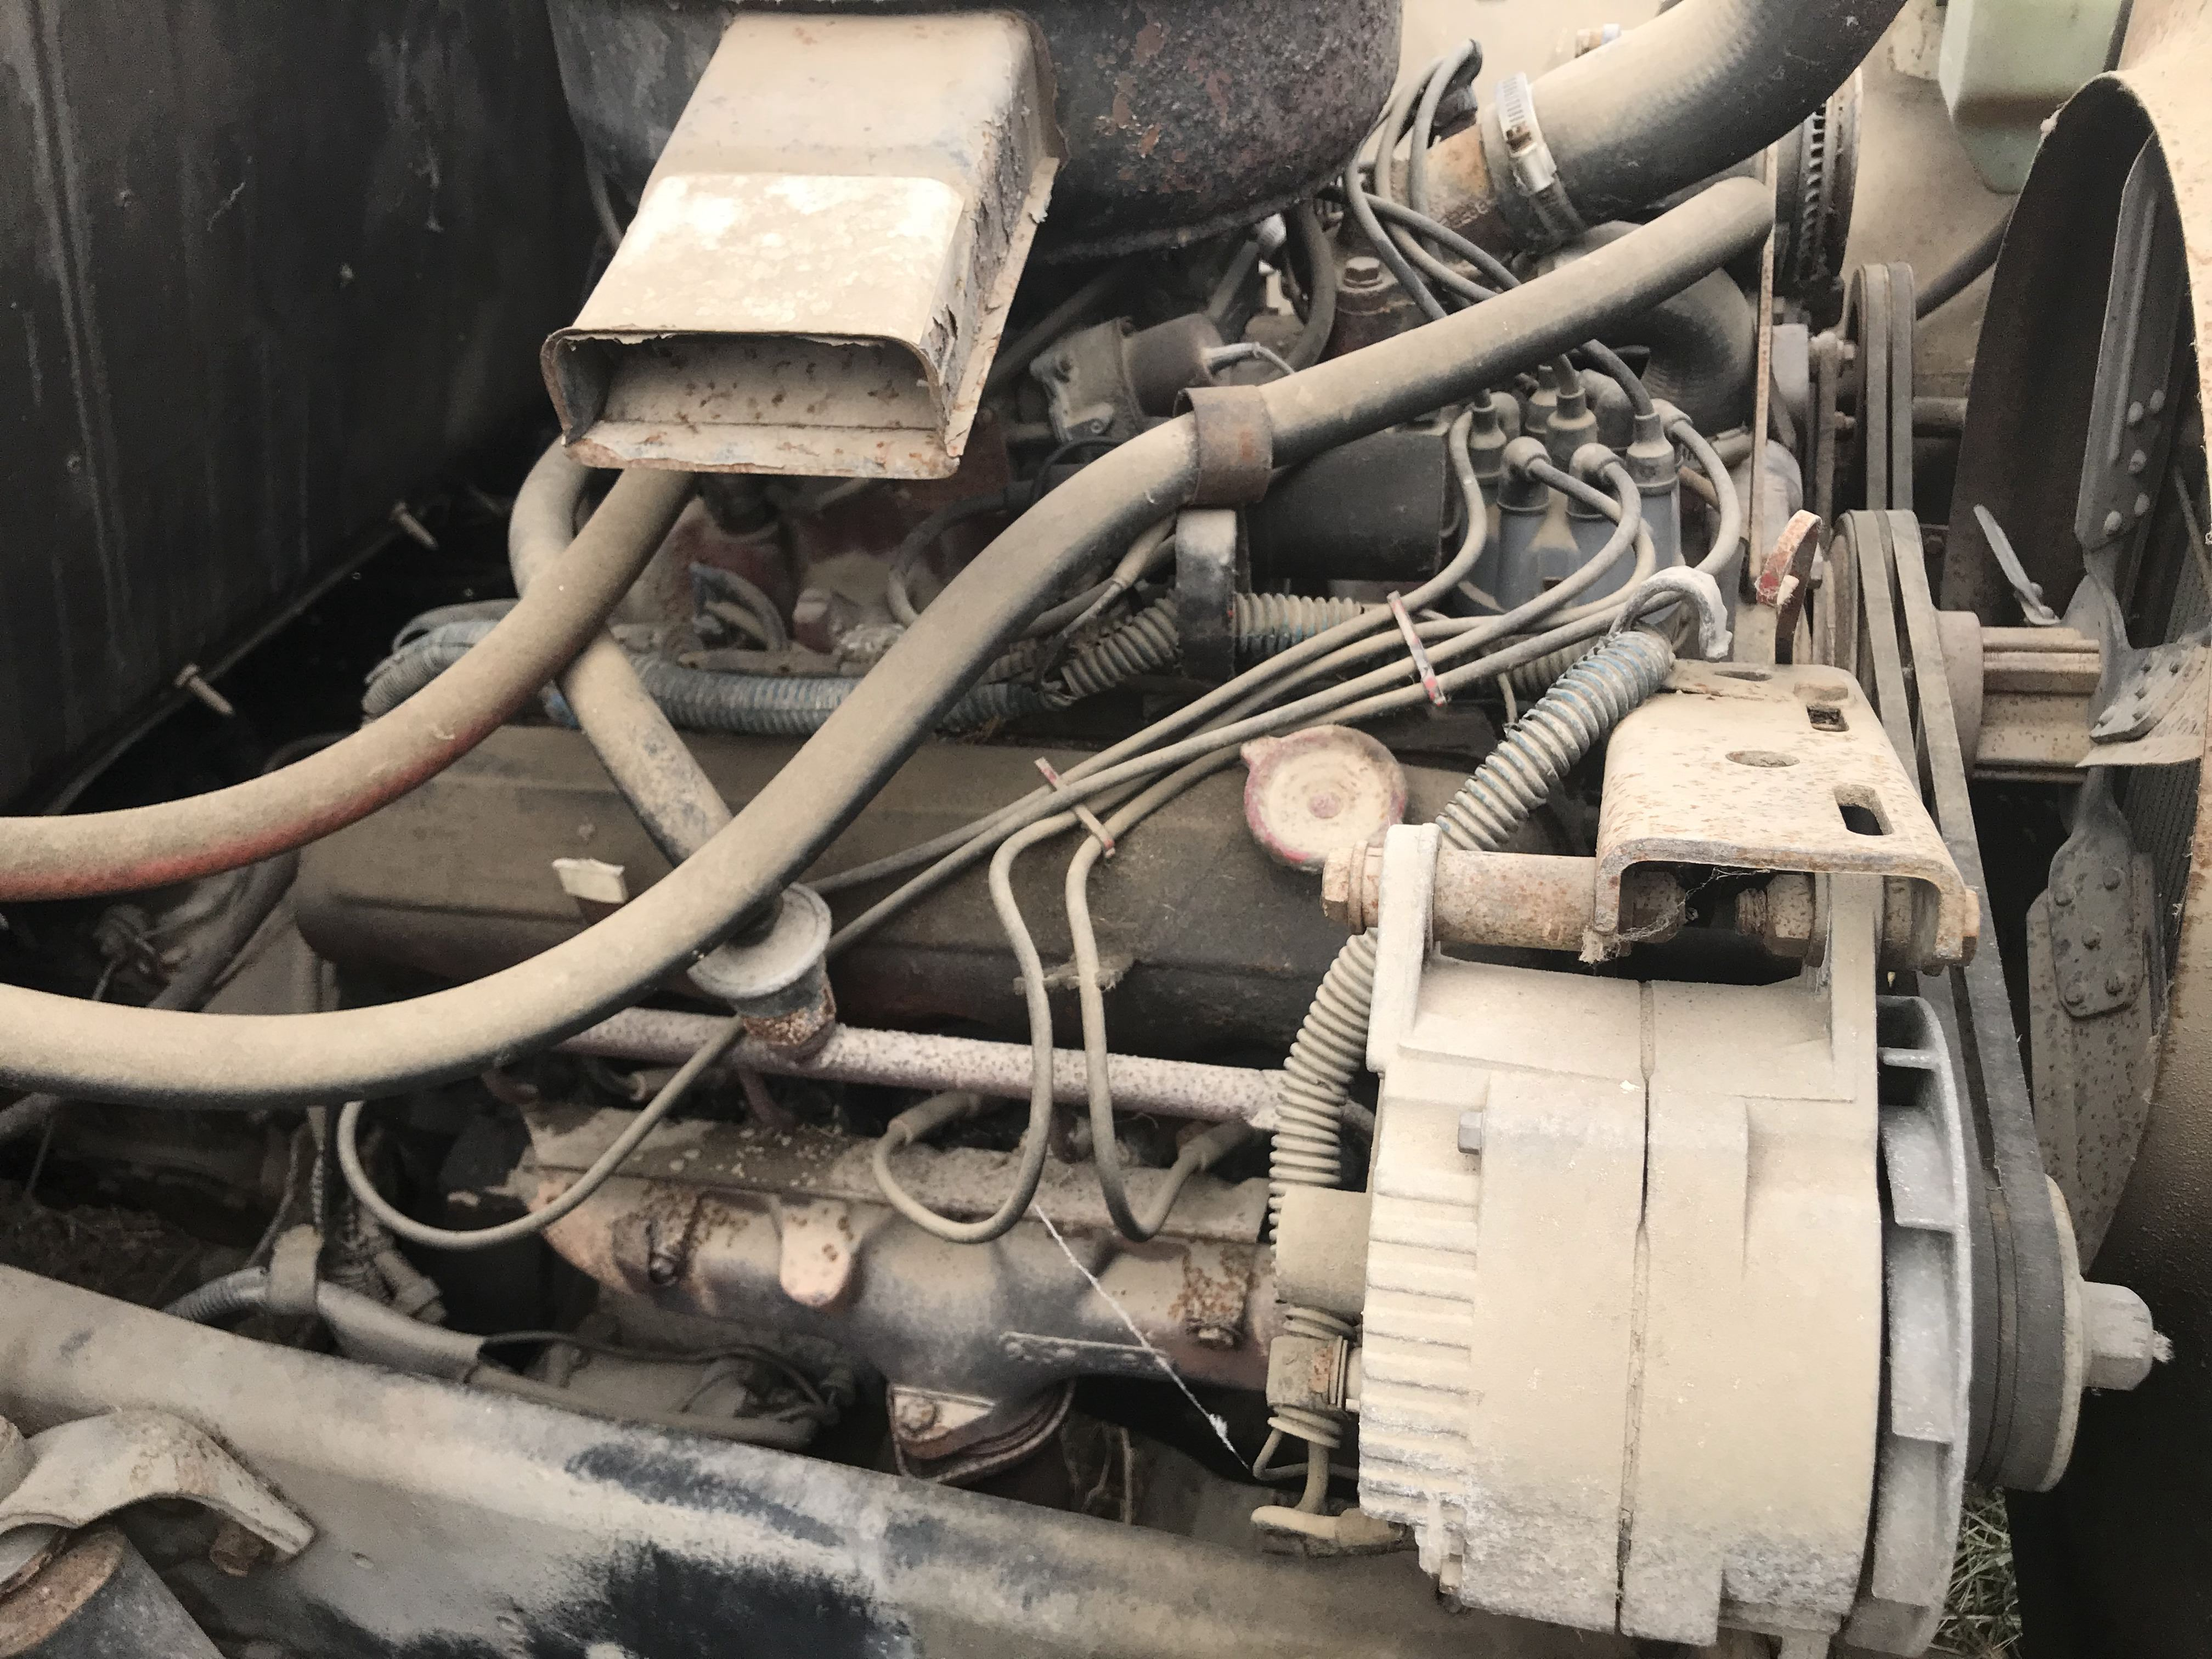 1984 International S1724 Shifting Pattern And Mystery Engine Part Truck Wiring Diagram S2300 Img 5387thumb2d04ee88c5464e51049d52e083a743dd